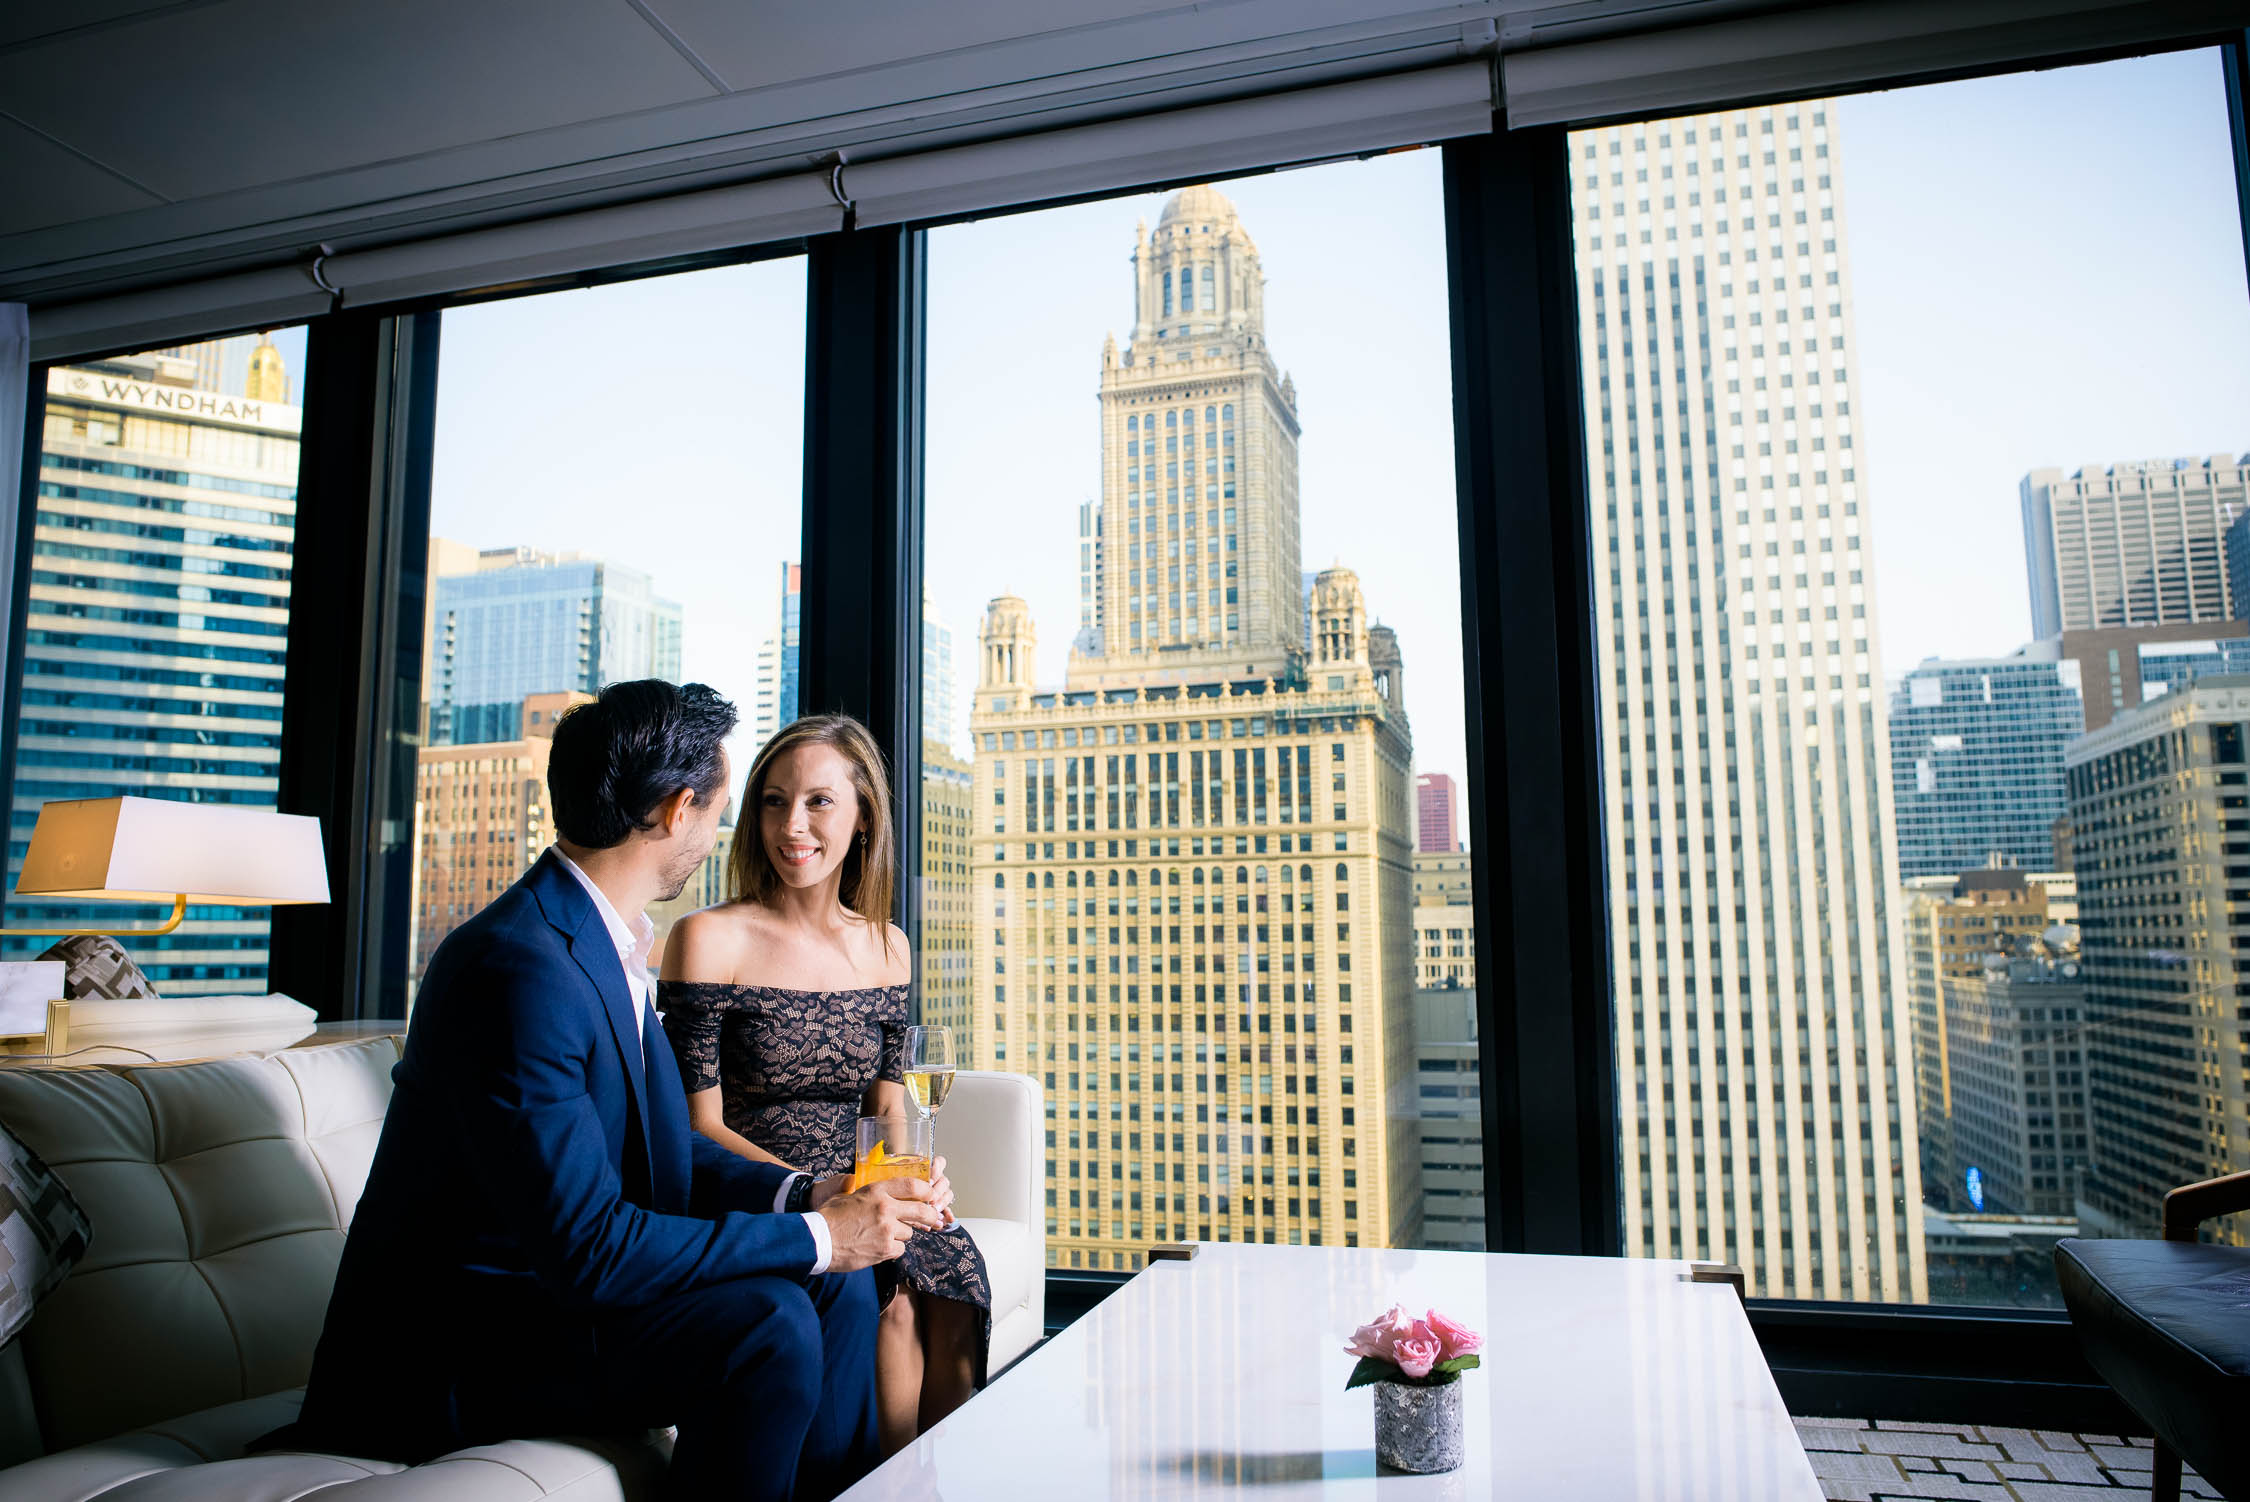 Views of downtown Chicago from the Langham Hotel during an engagement session.